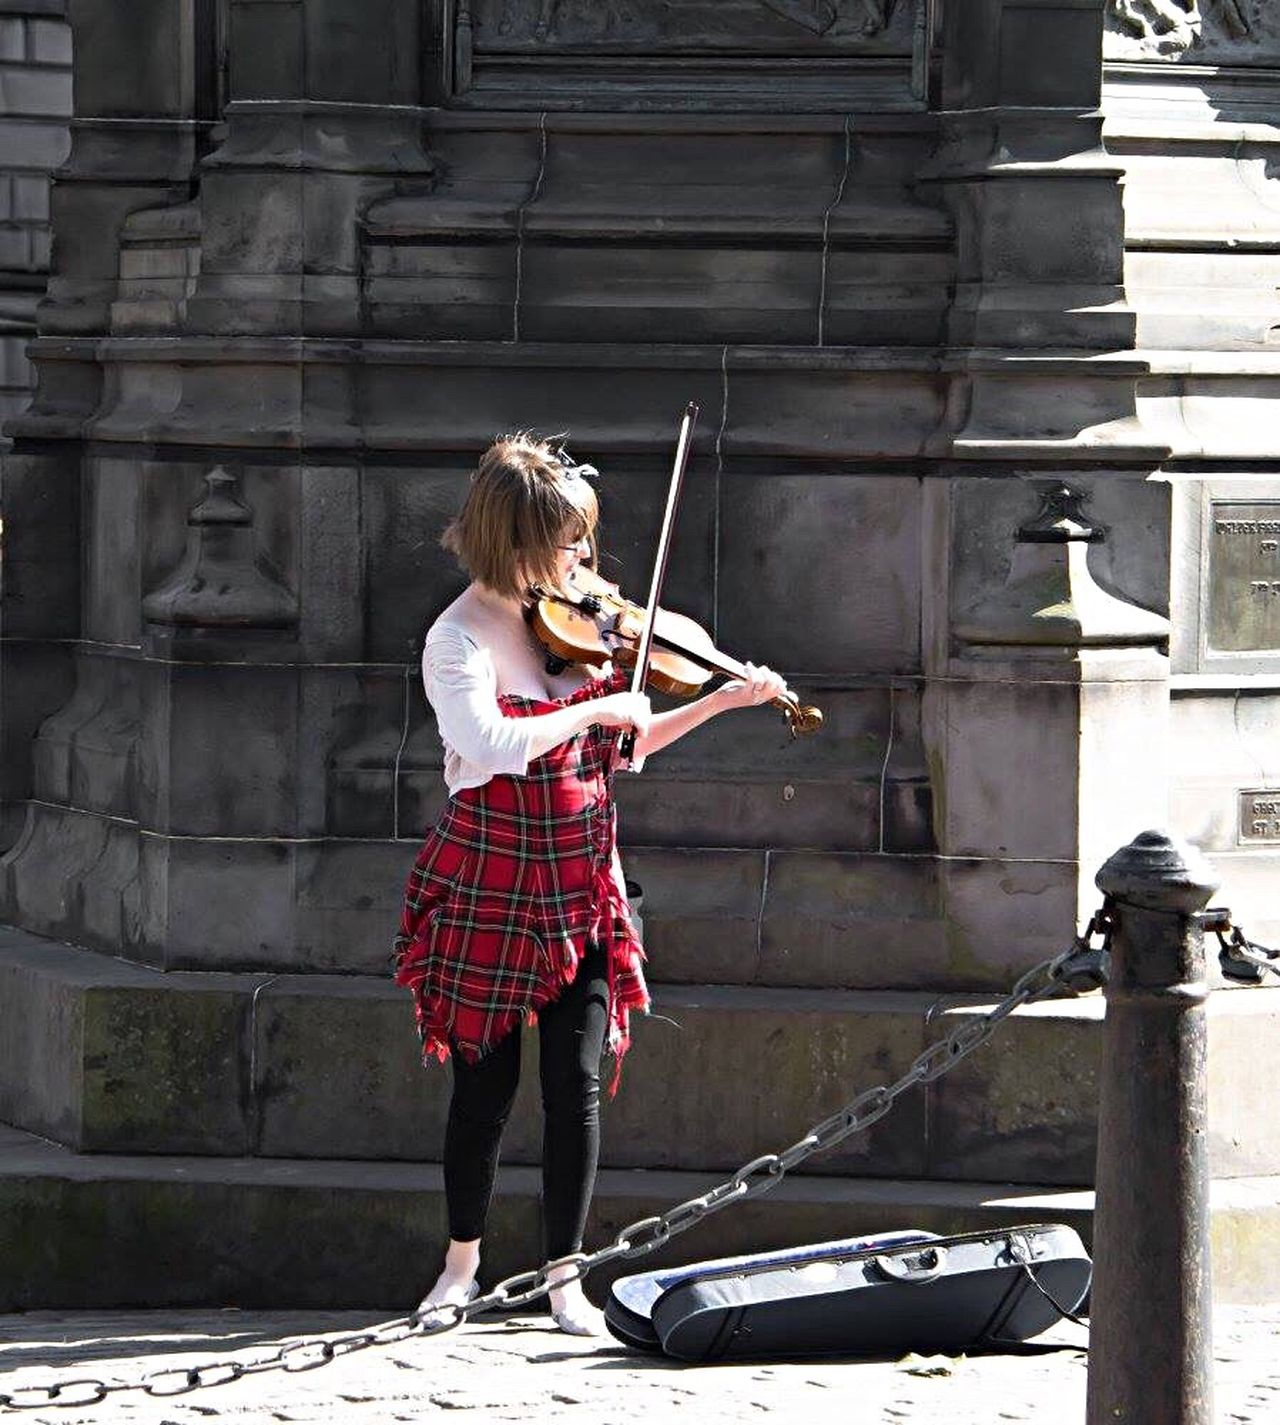 EyeEm MyEyeEm Street Photography Frommypointofview Edinburgh Music Musicintheair Girlplayingmusic Randomphotography Randompic